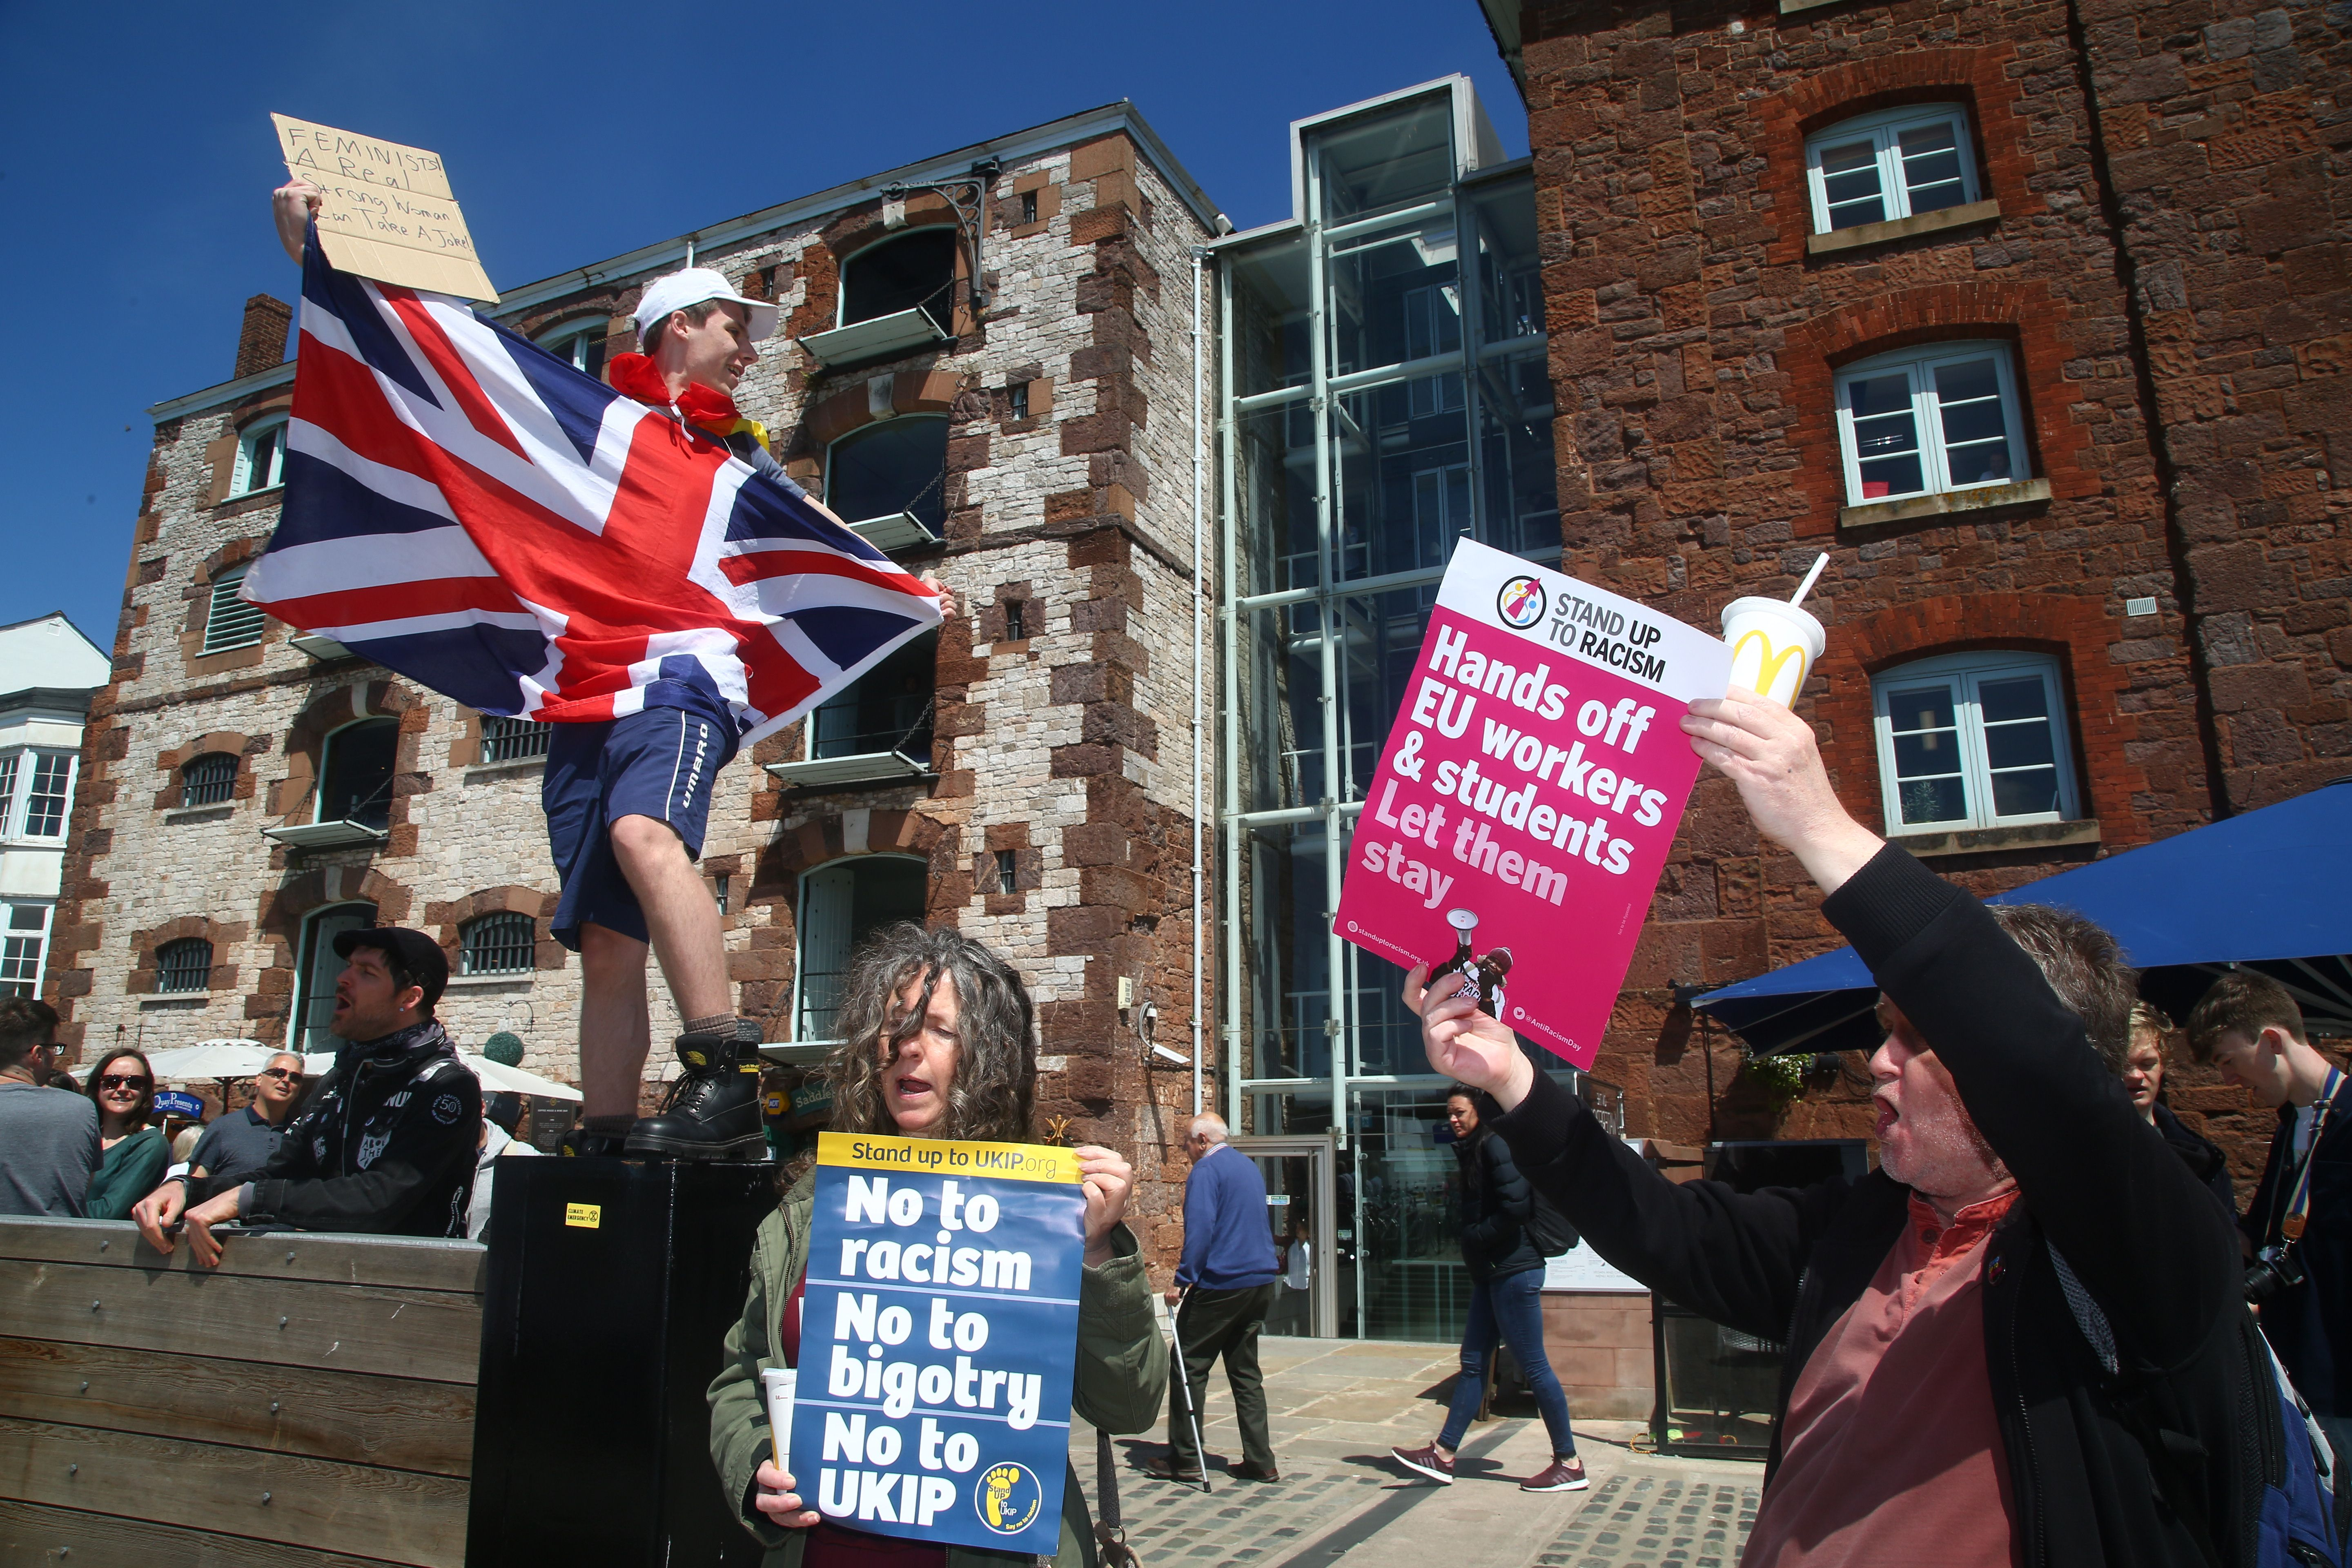 Some politicians and campaigners are concerned at the rise of far right groups ahead of the EU elections (Photo credit: GEOFF CADDICK/AFP/Getty Images)